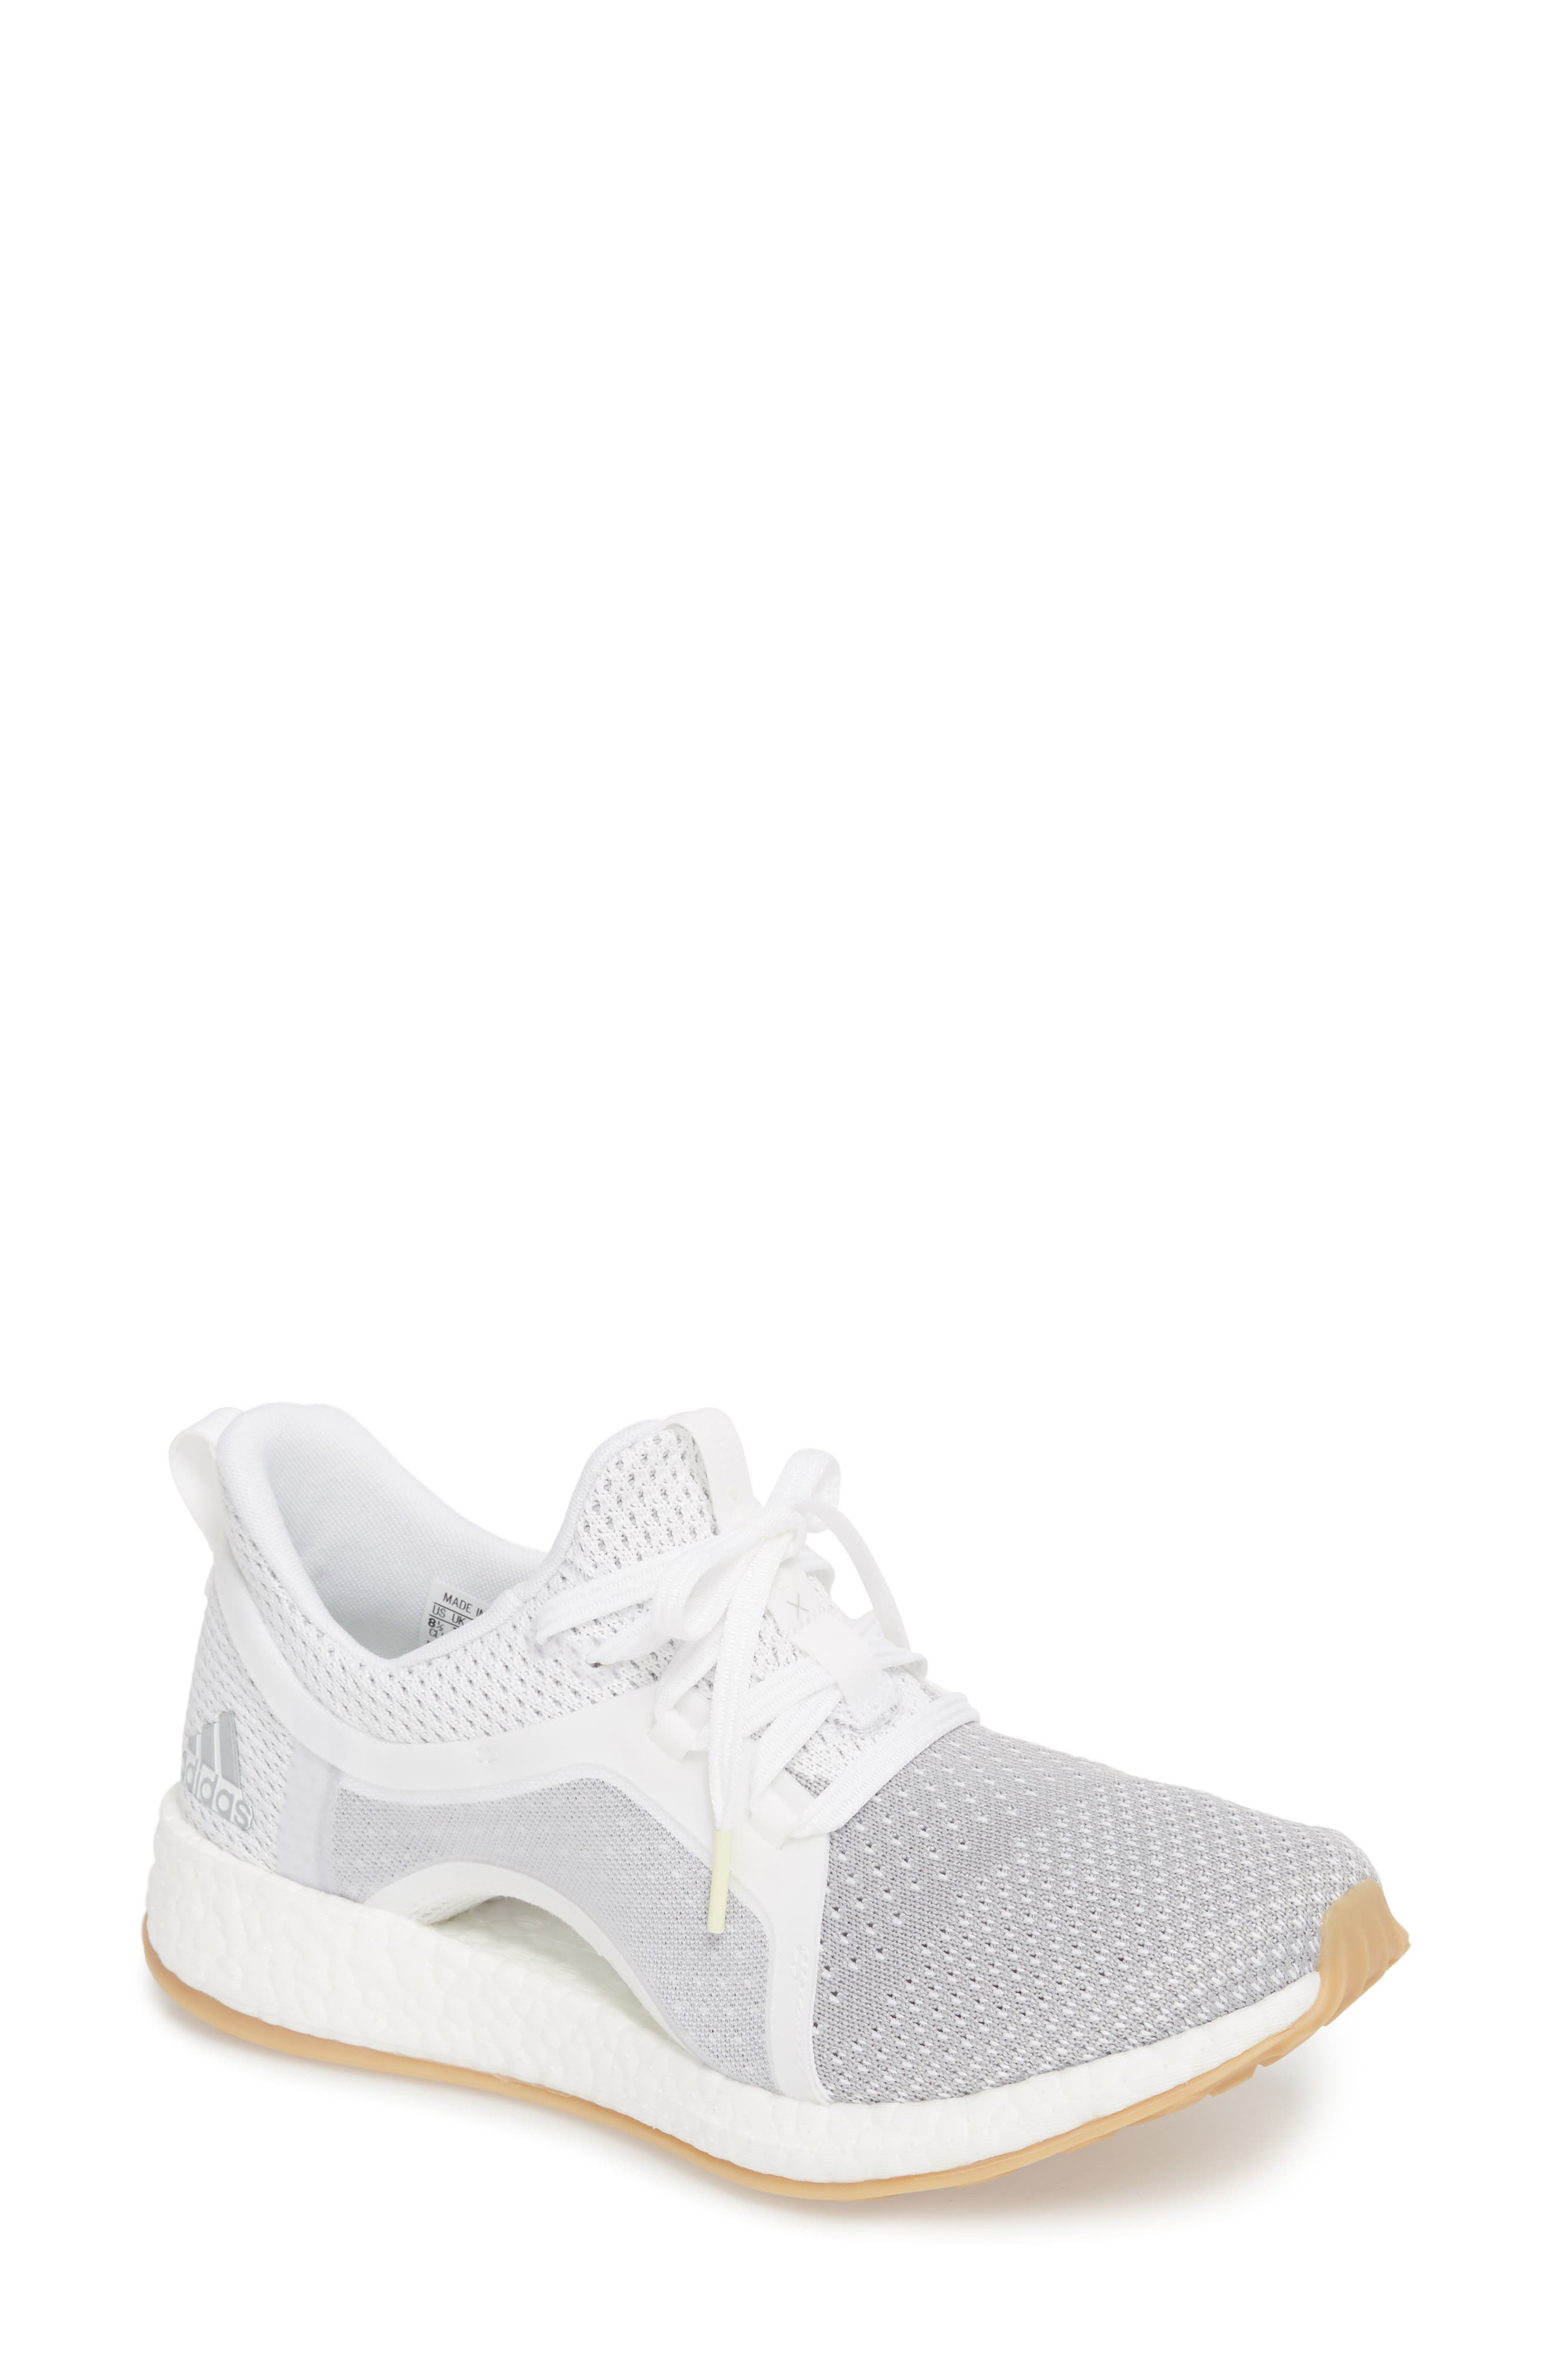 Pureboost X Clima Sneaker,                             Main thumbnail 1, color,                             100